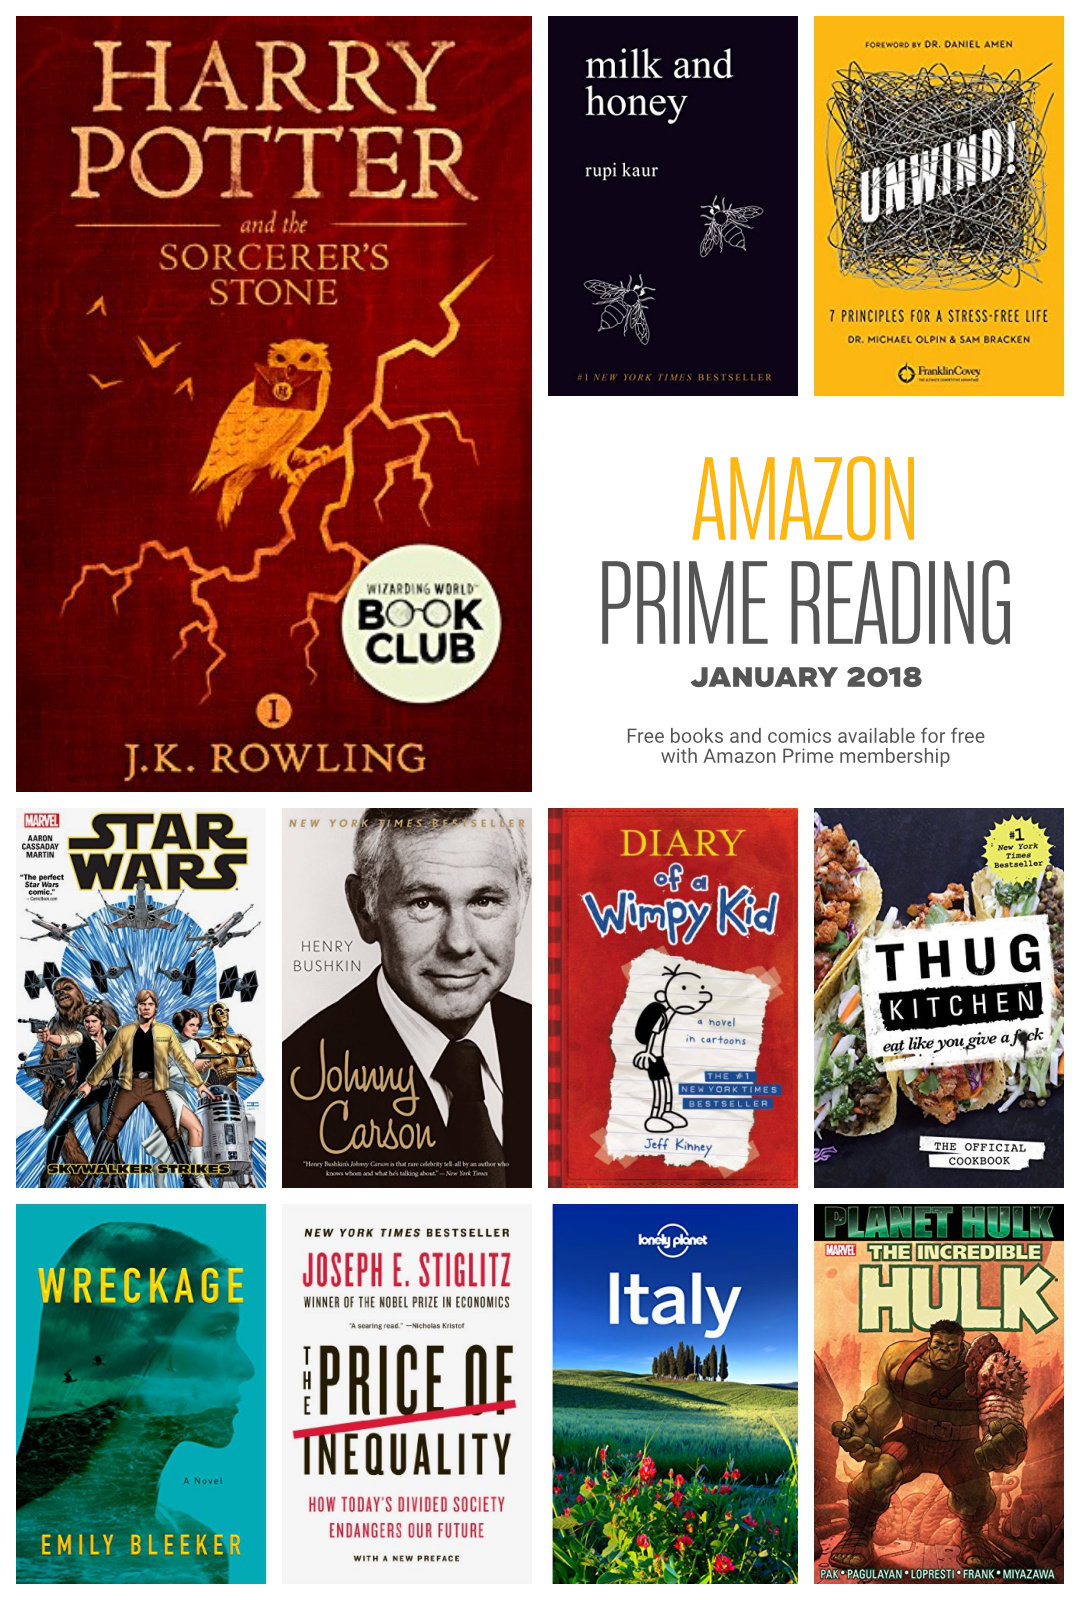 Amazon Prime Reading The 2018 List Of Free Books And Comics